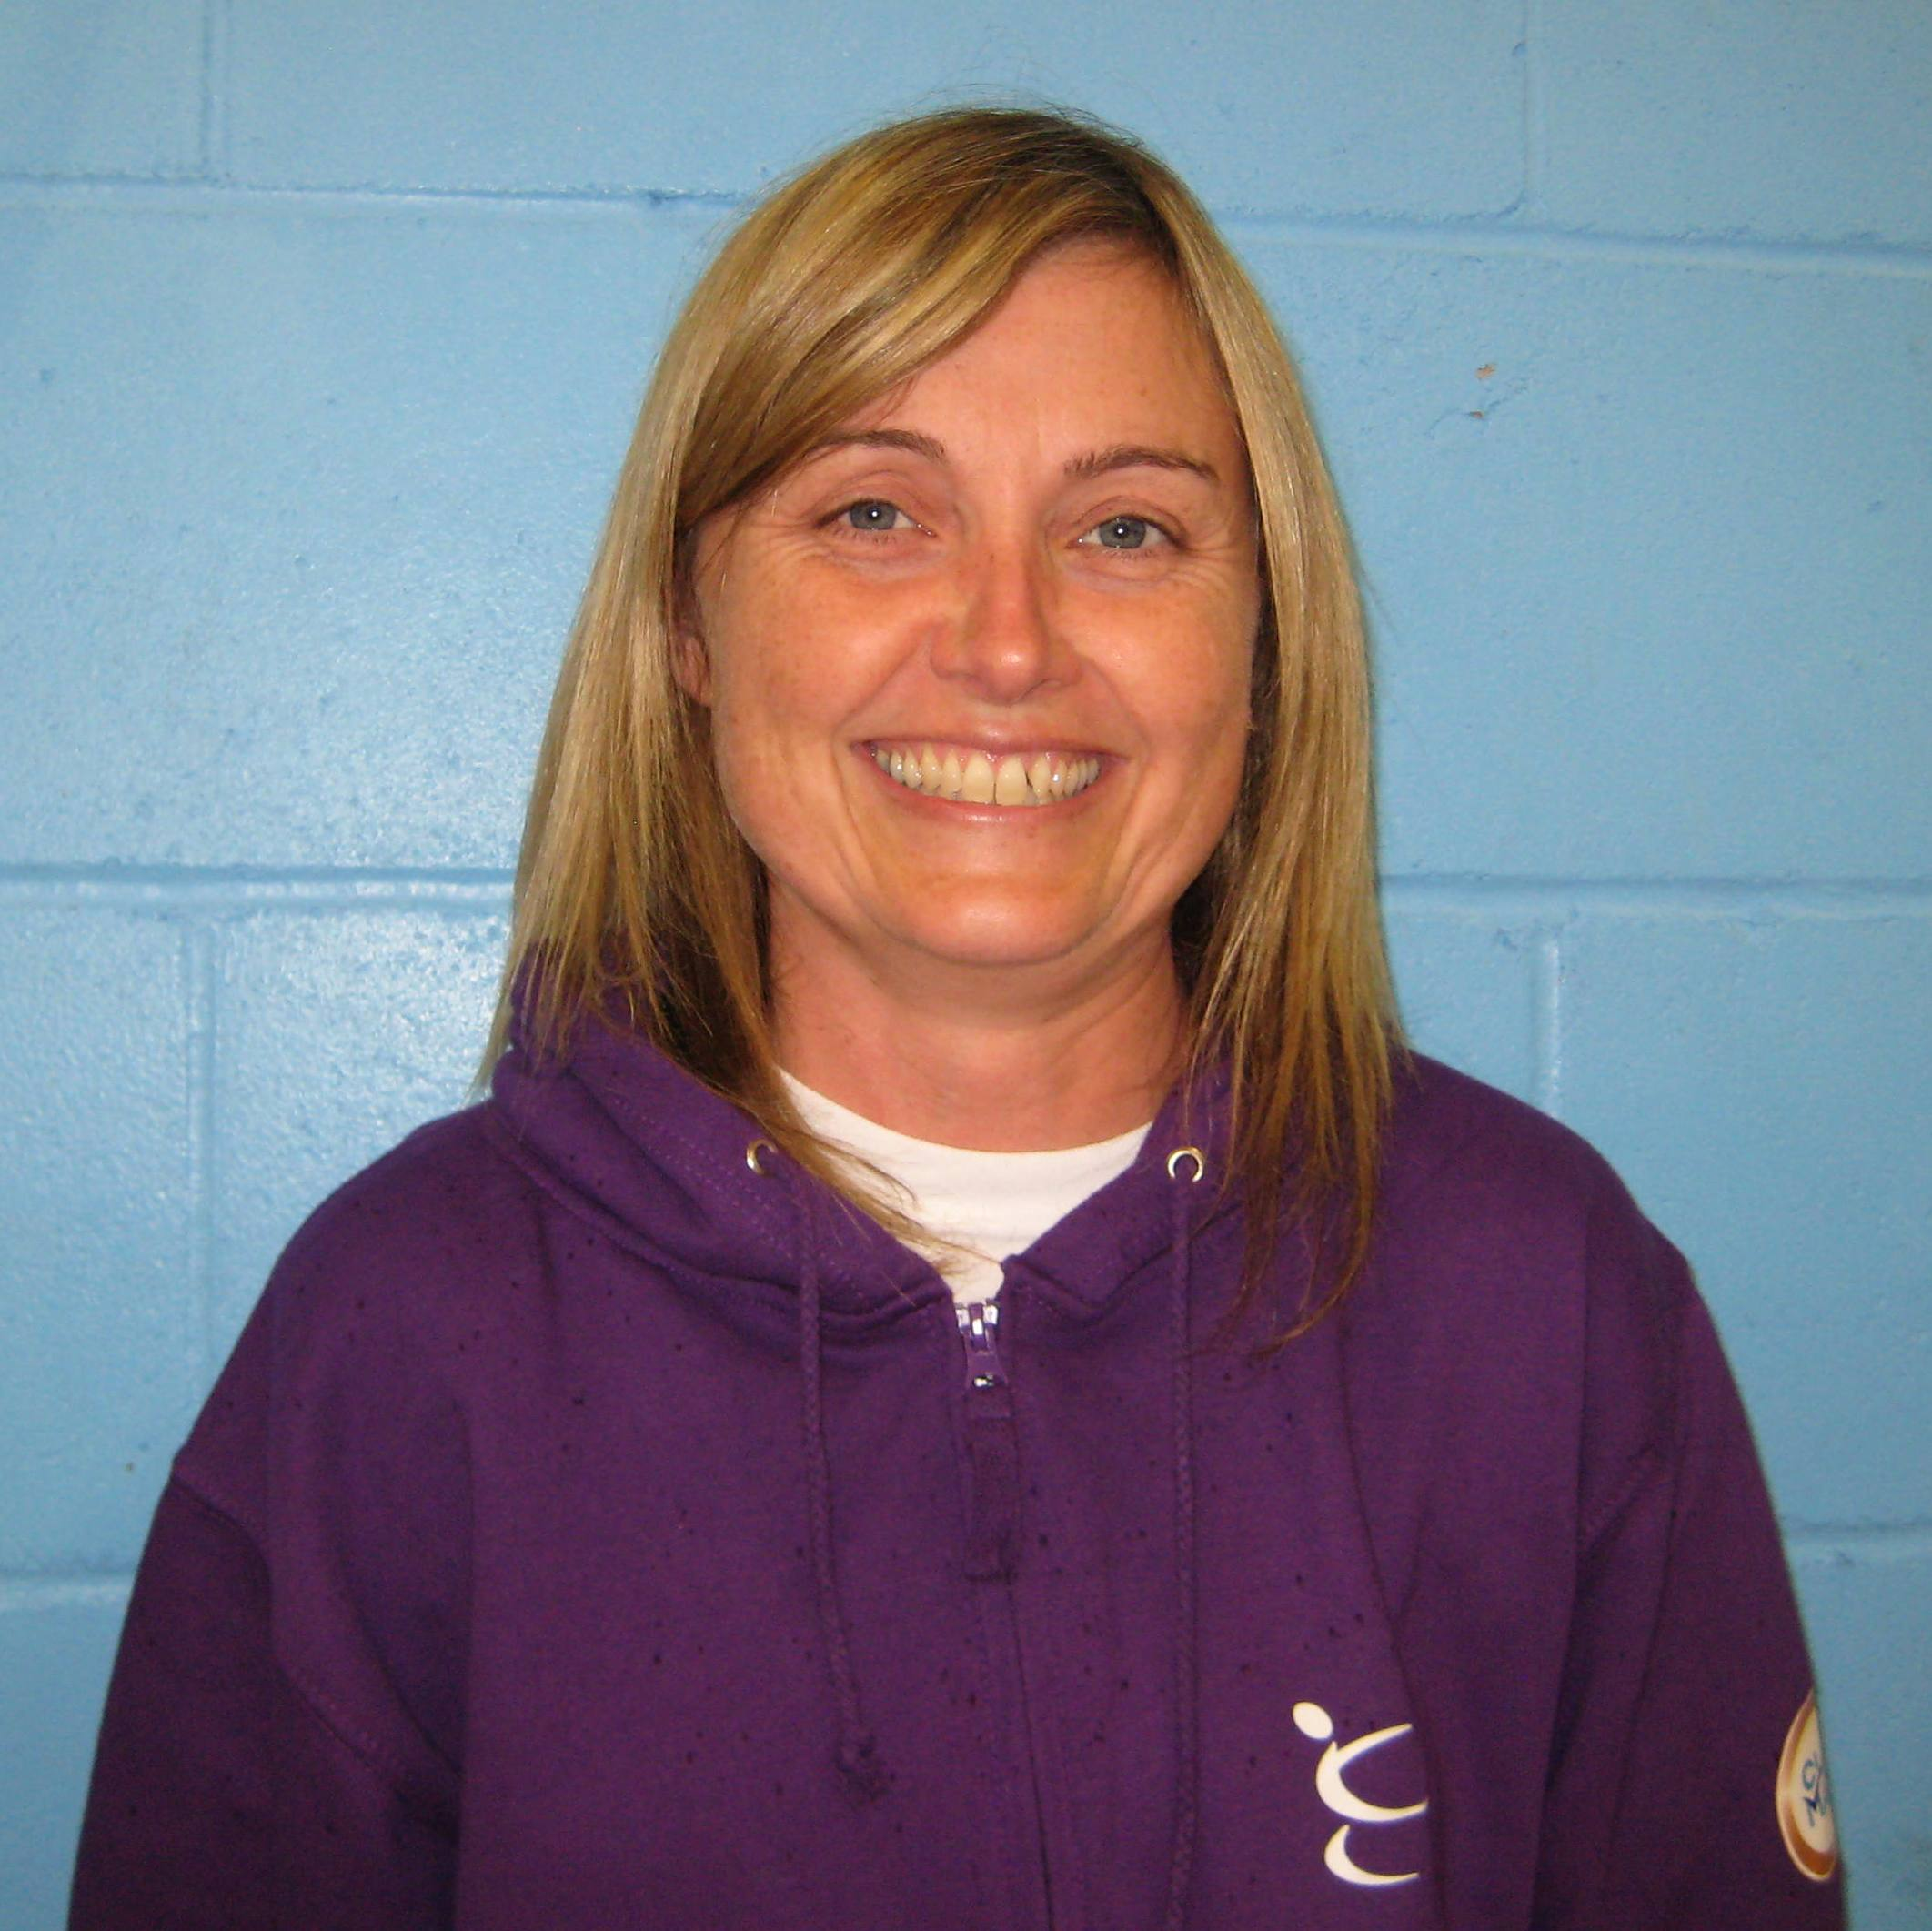 Anita Griffiths - Coach